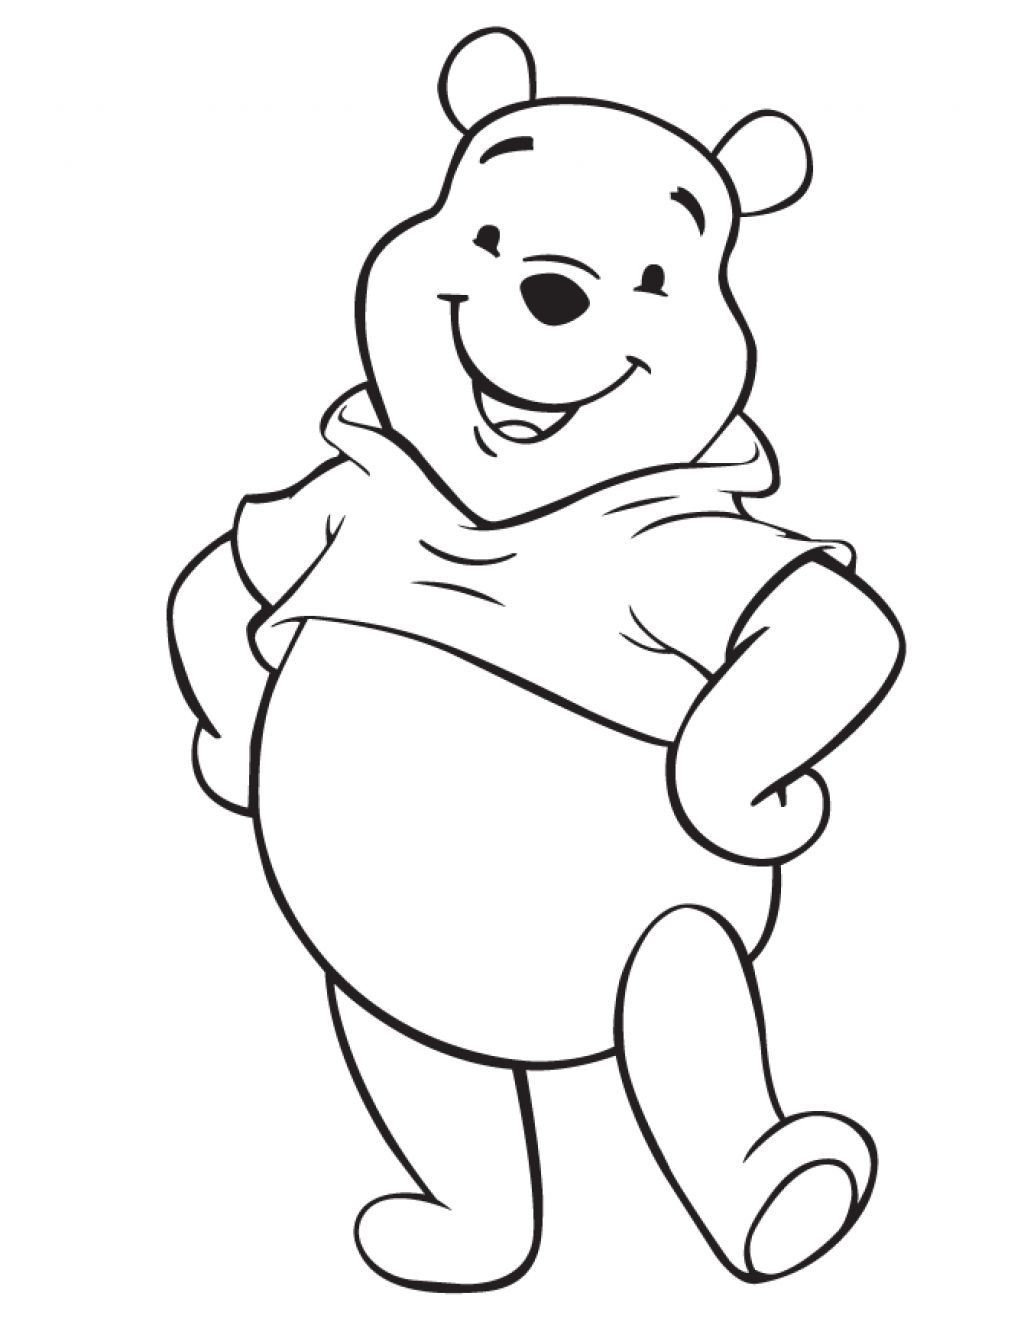 Images For Disney Characters Coloring Pages Easy Disney Character Drawings Bear Coloring Pages Baby Disney Characters